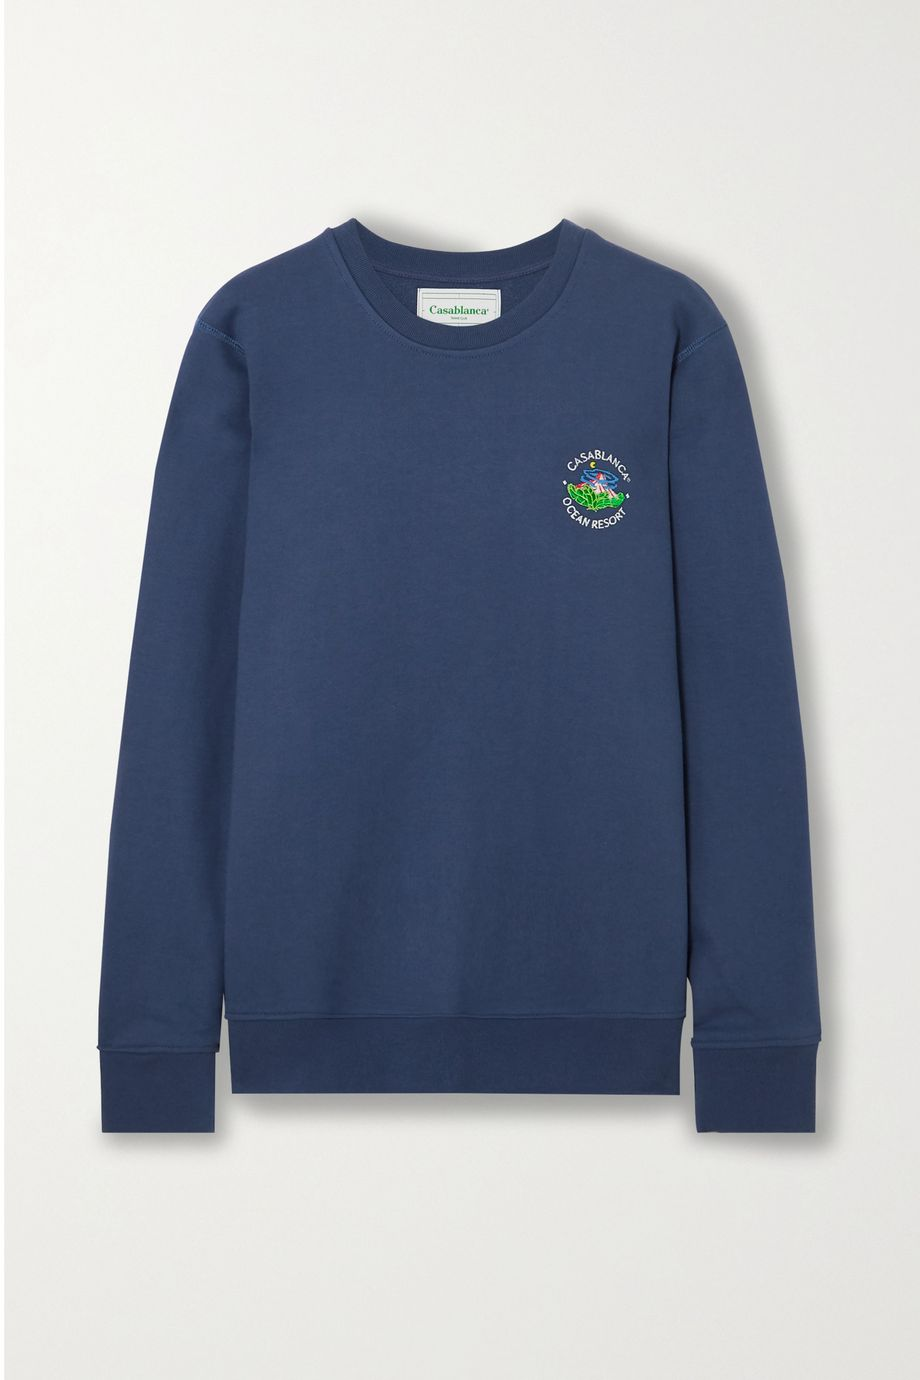 Casablanca Embroidered cotton-jersey sweatshirt